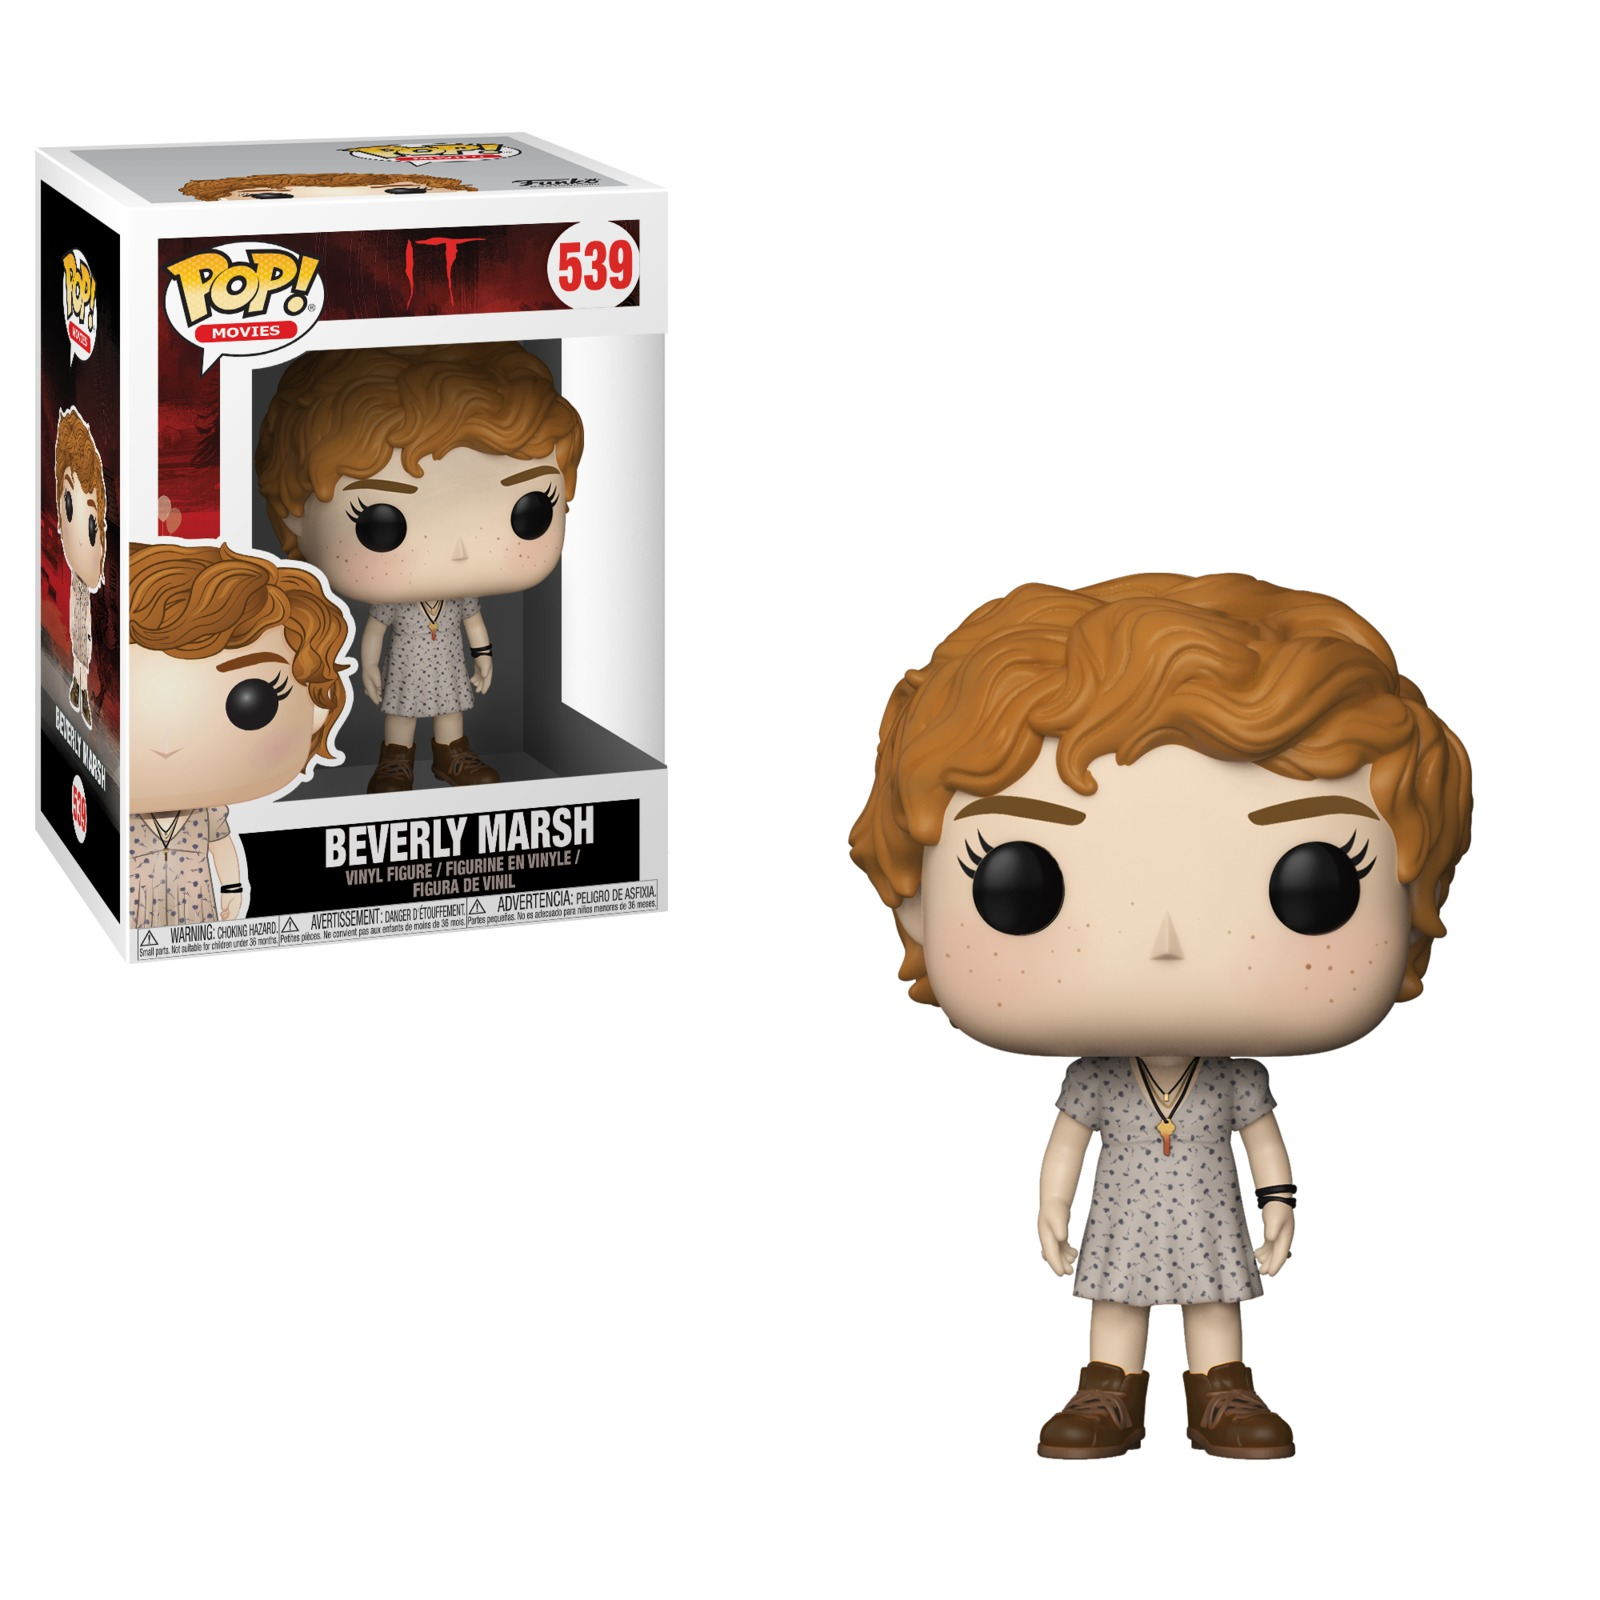 IT (2017) - Beverly Marsh Pop! Vinyl Figure (with a chance for a Chase version!) image